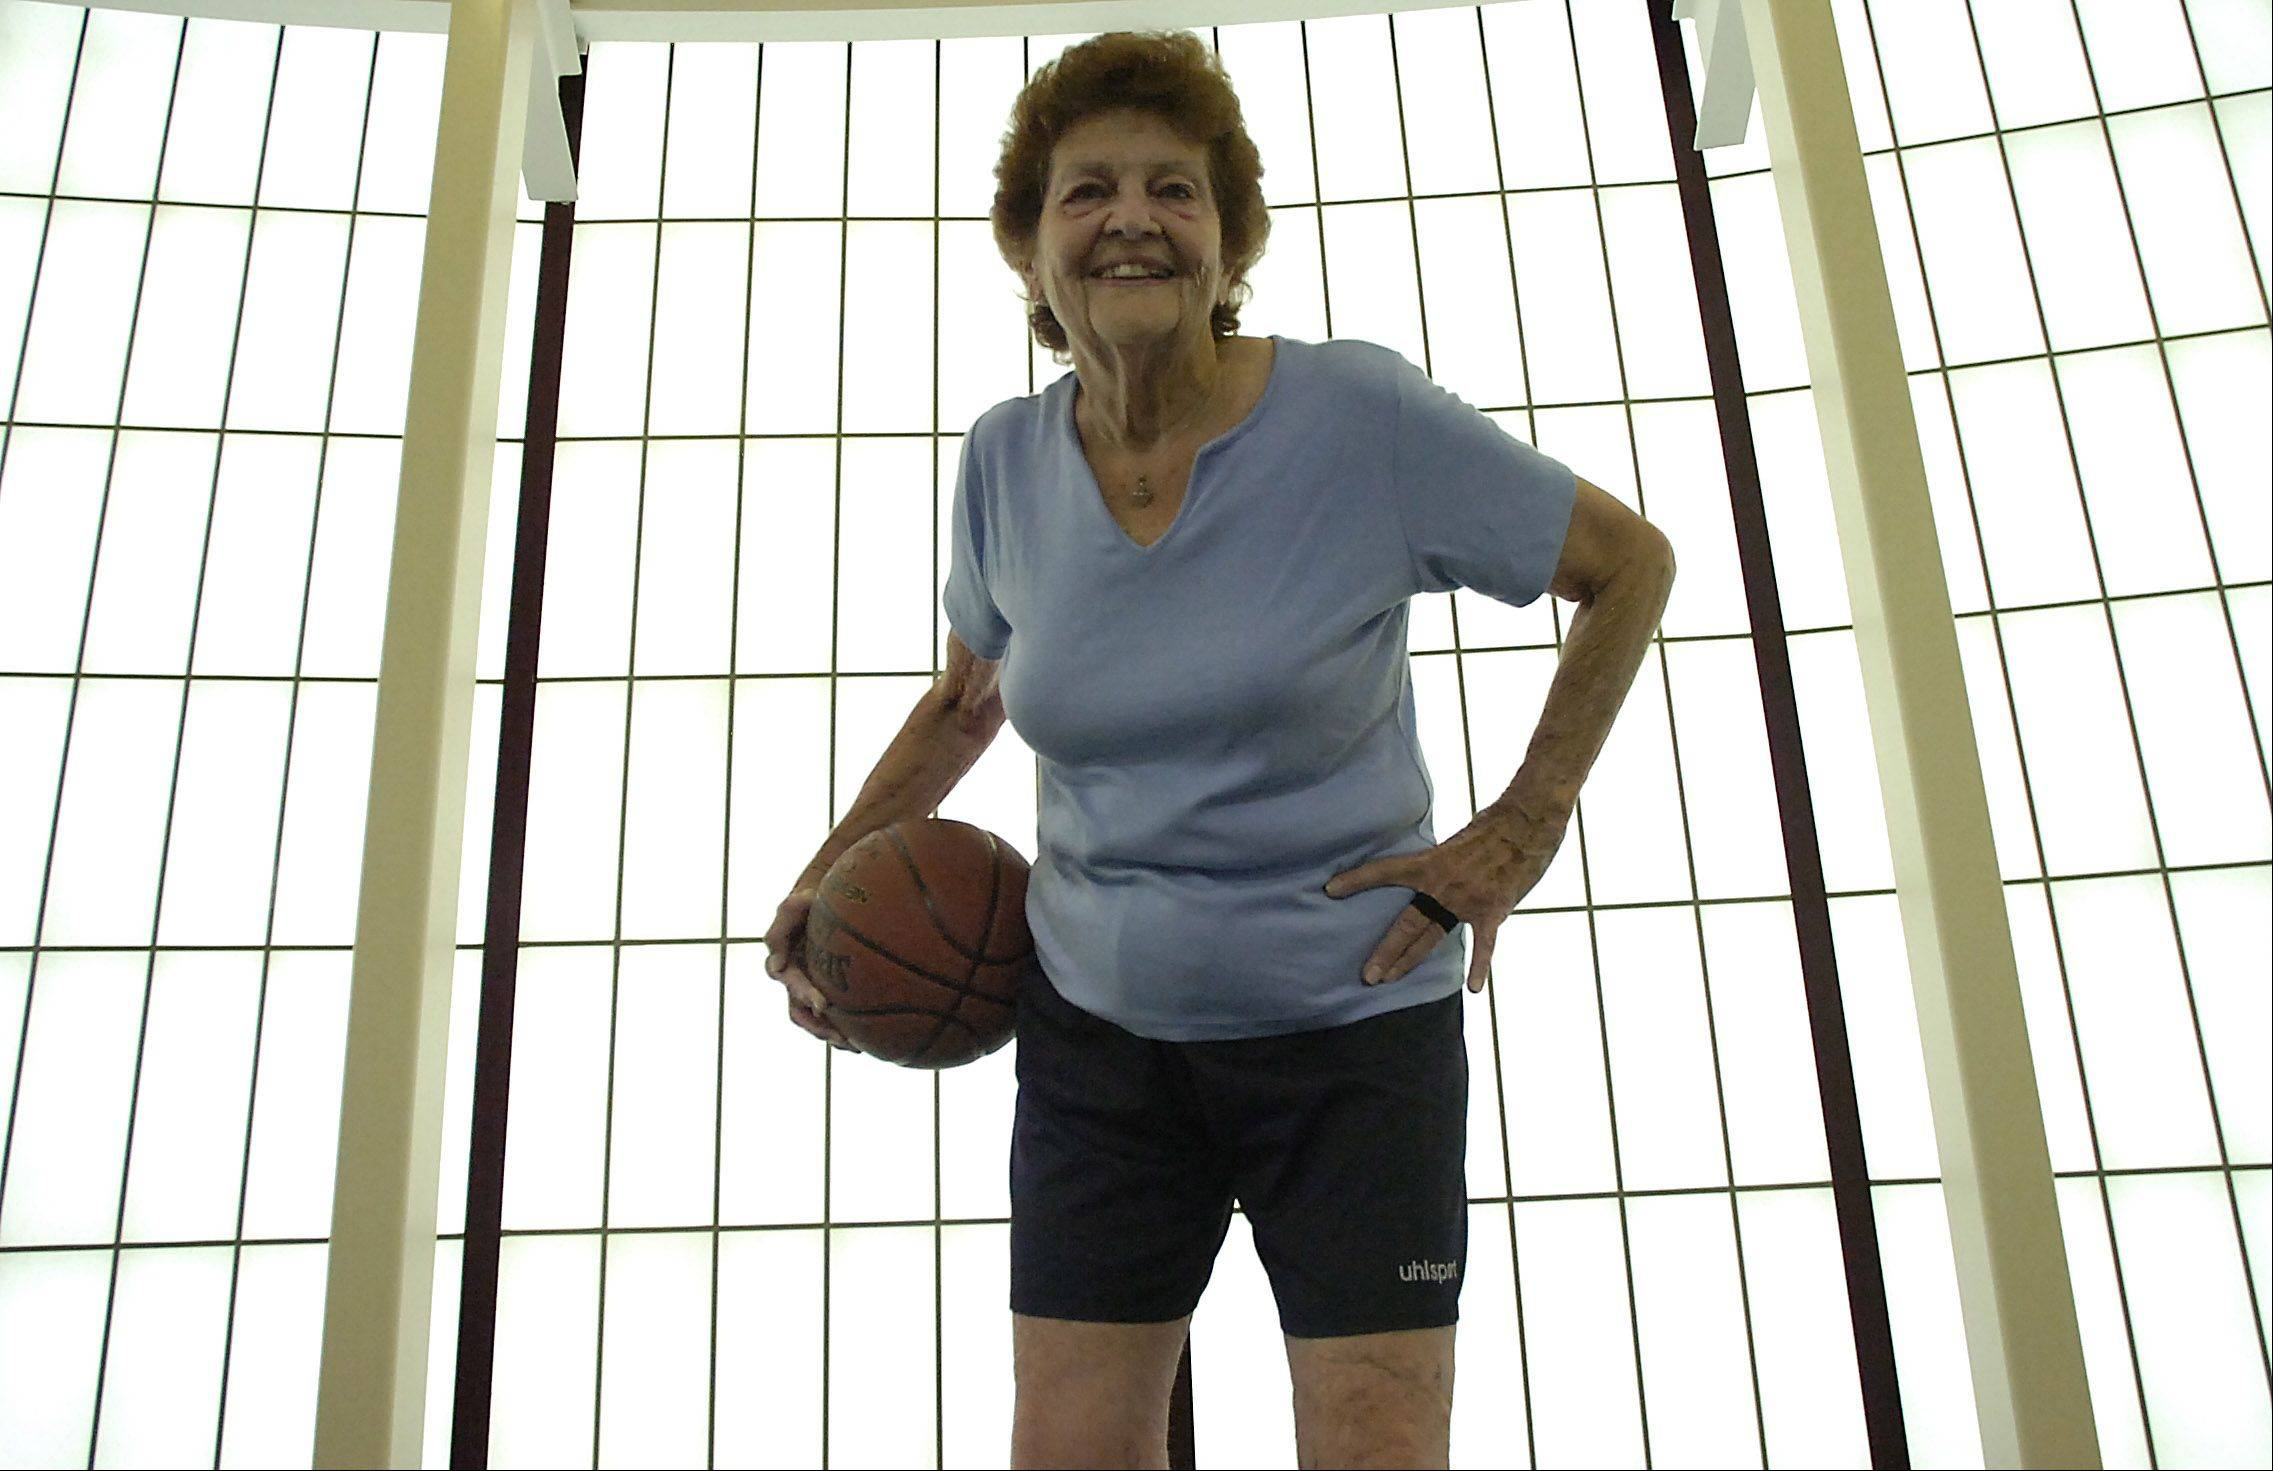 Lollie Guiney shoots hoops at the Hoffman Estates Park District at age 78. She is now 82, and stepping down from her position as commissioner on the park district board after 16 years of service.